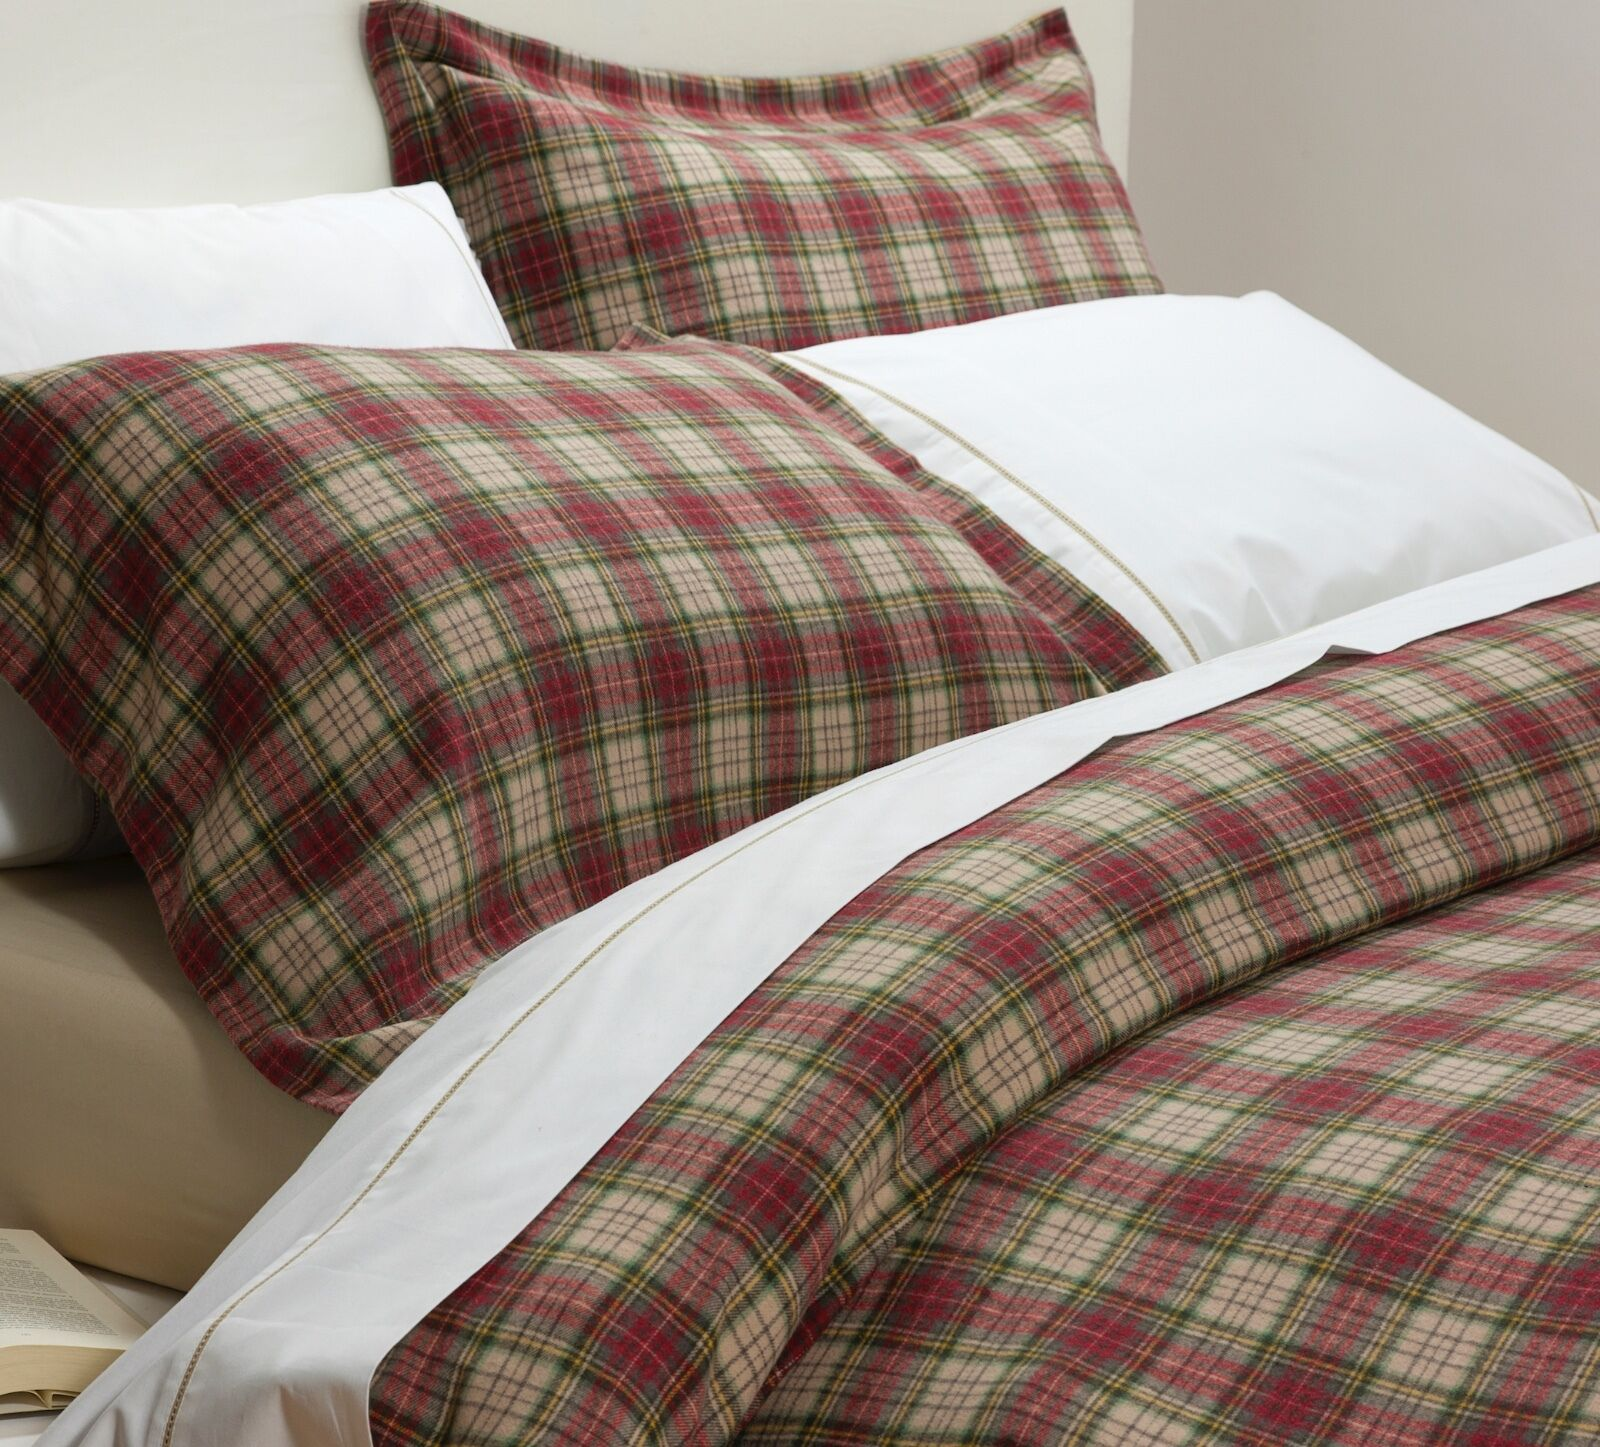 rot Tartan Woven Brushed Cotton (Flanellette) 100% Cotton Duvet Cover